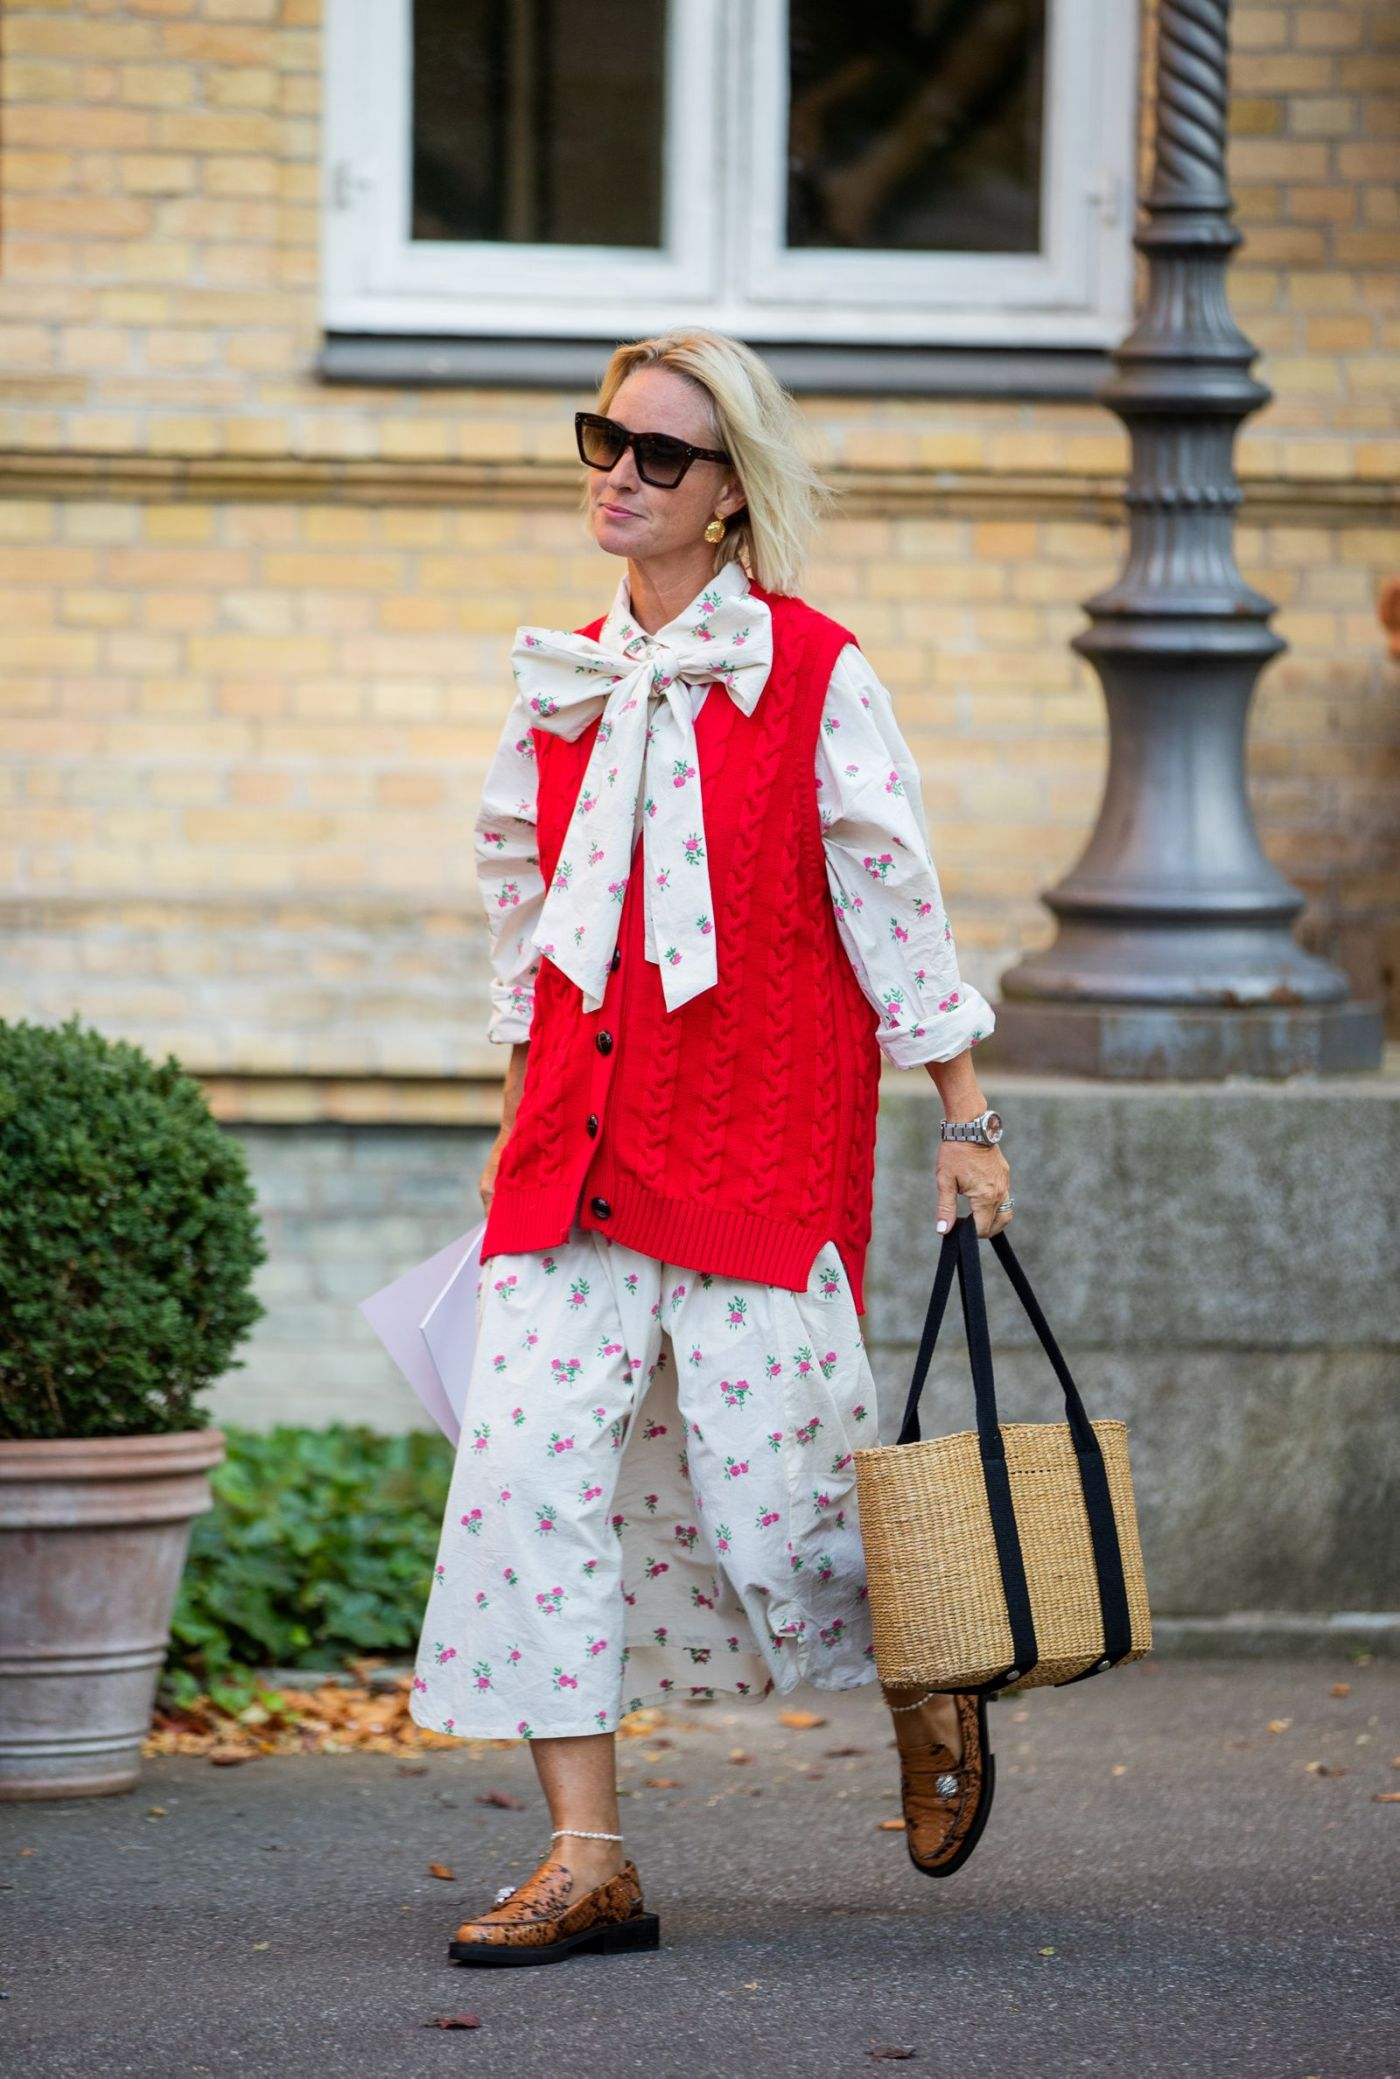 copenhagen, denmark august 12 a guest is seen wearing red vest, dress with floral print outside by malene birger during copenhagen fashion week springsummer 2021 on august 12, 2020 in copenhagen, denmark photo by christian vieriggetty images